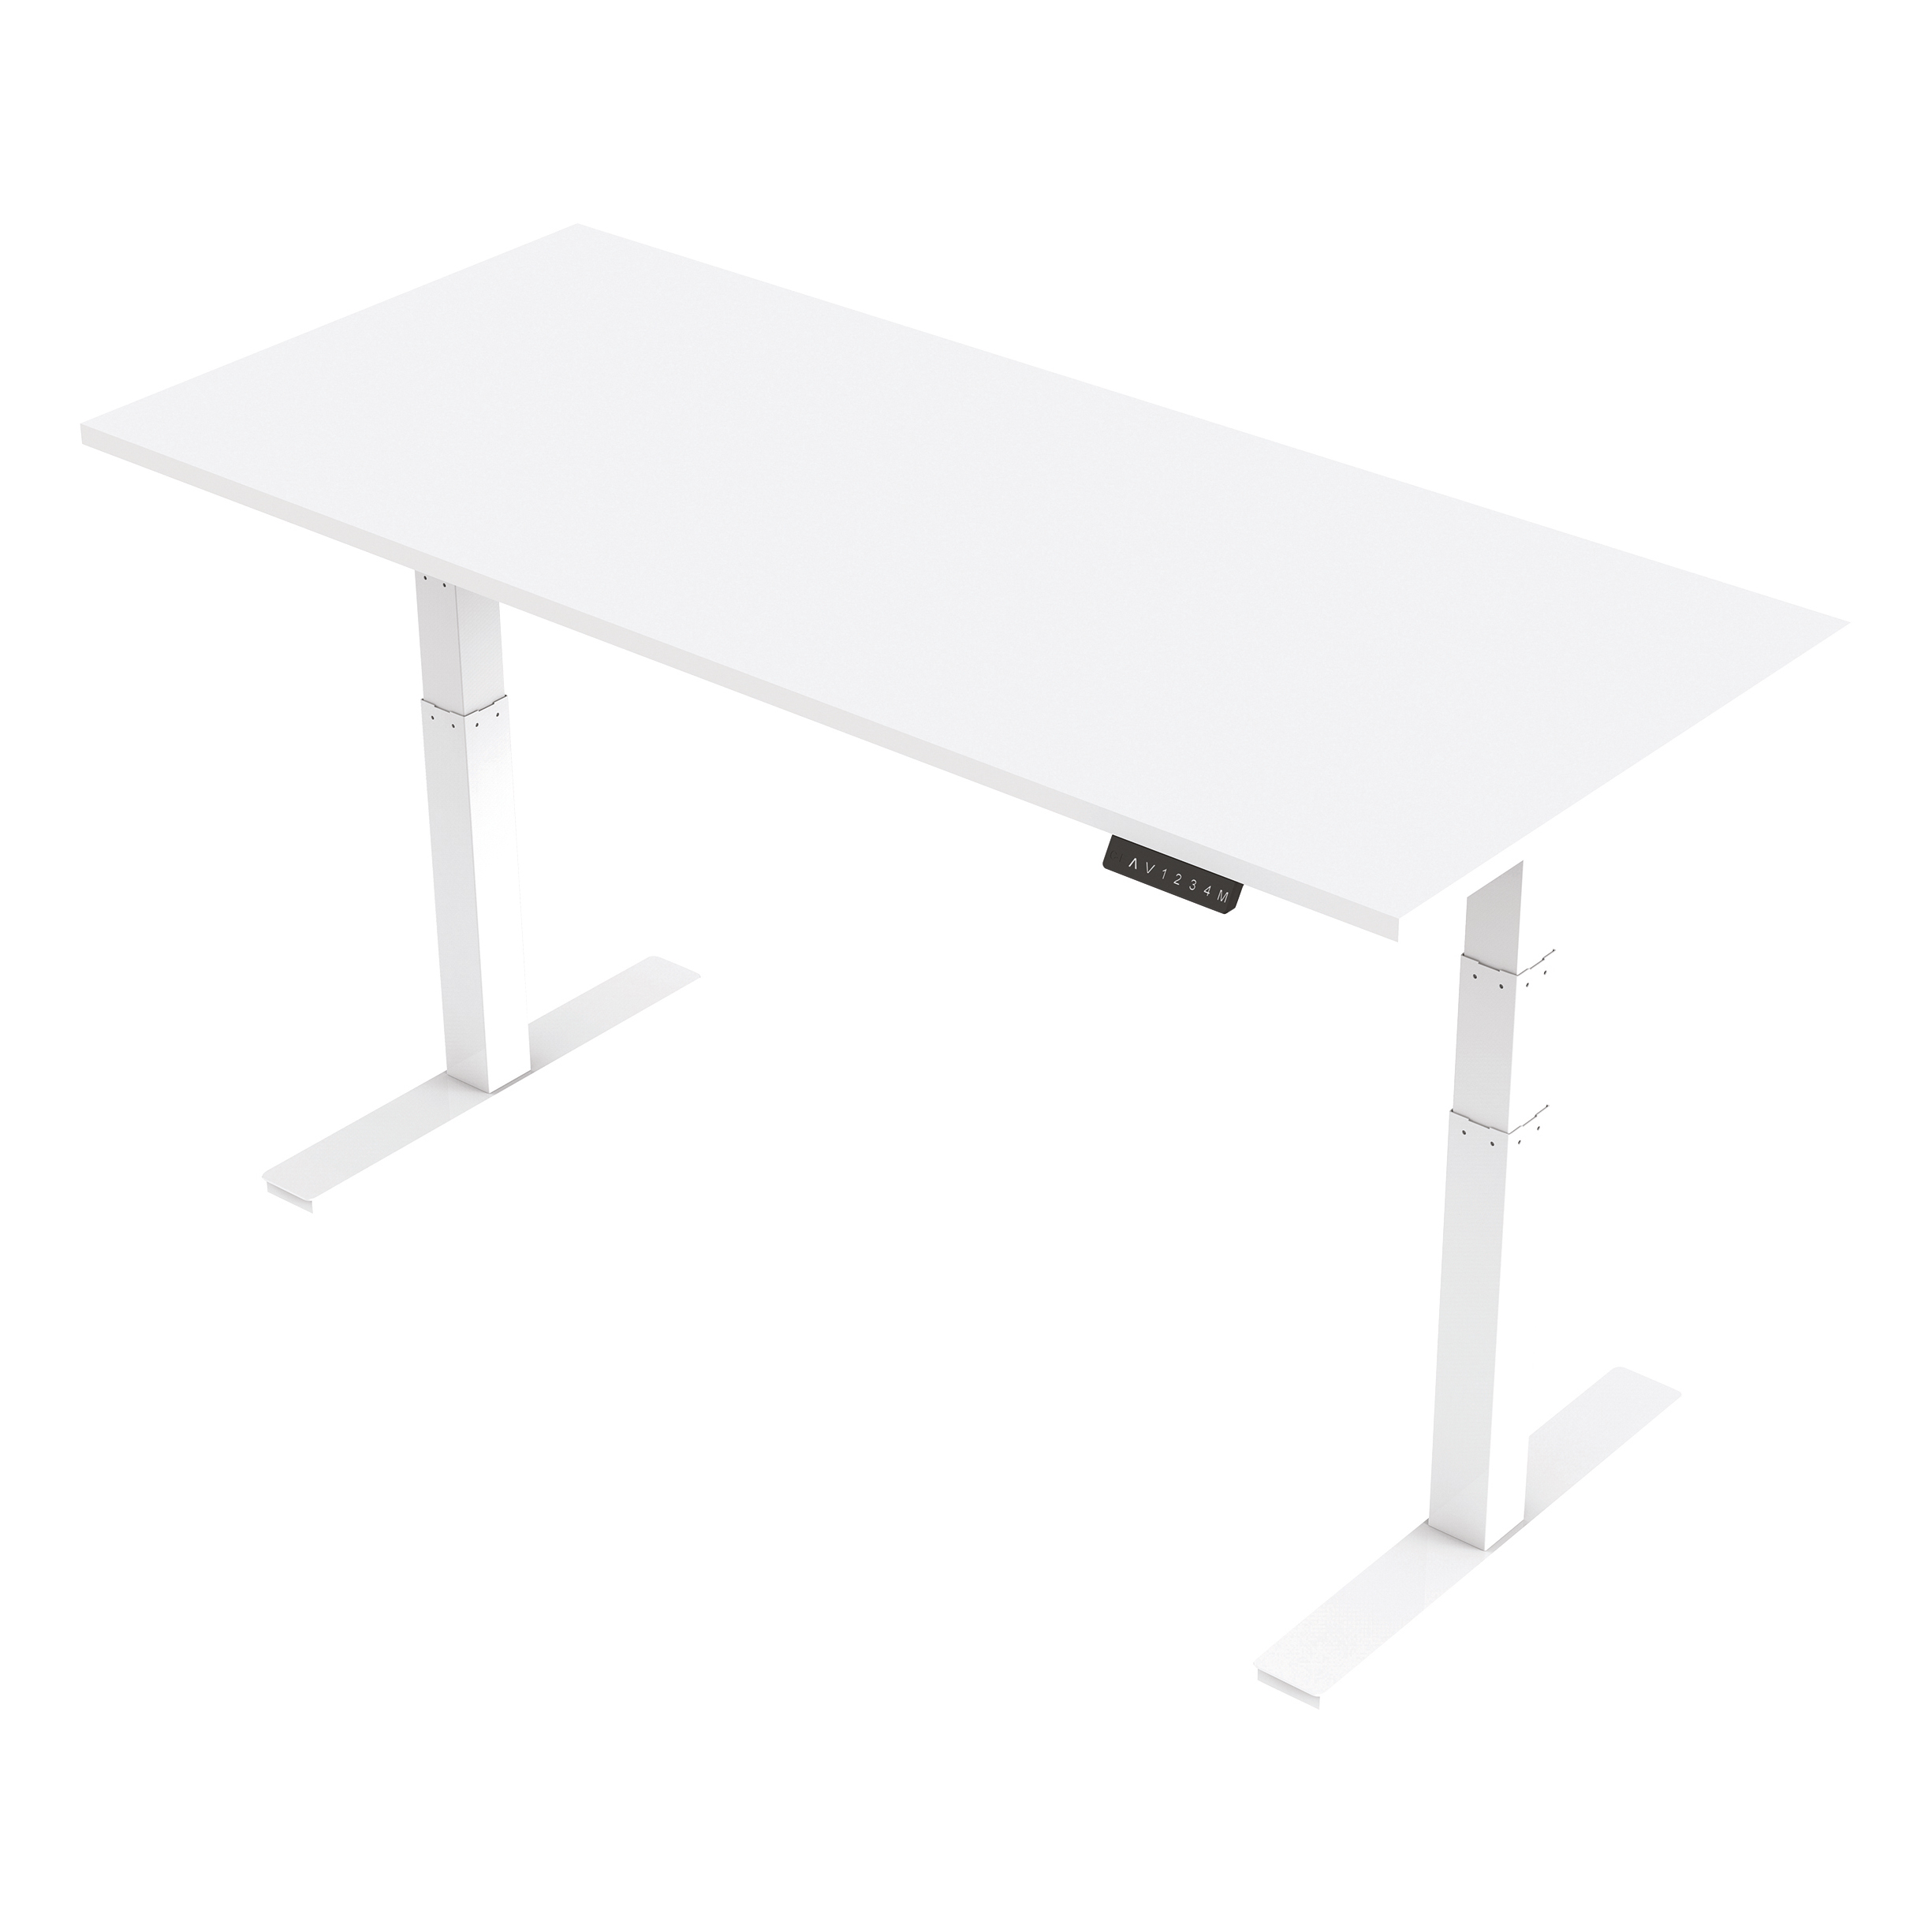 Trexus Sit Stand Desk Height-adjustable White Leg Frame 1800/800mm White Ref HA01032